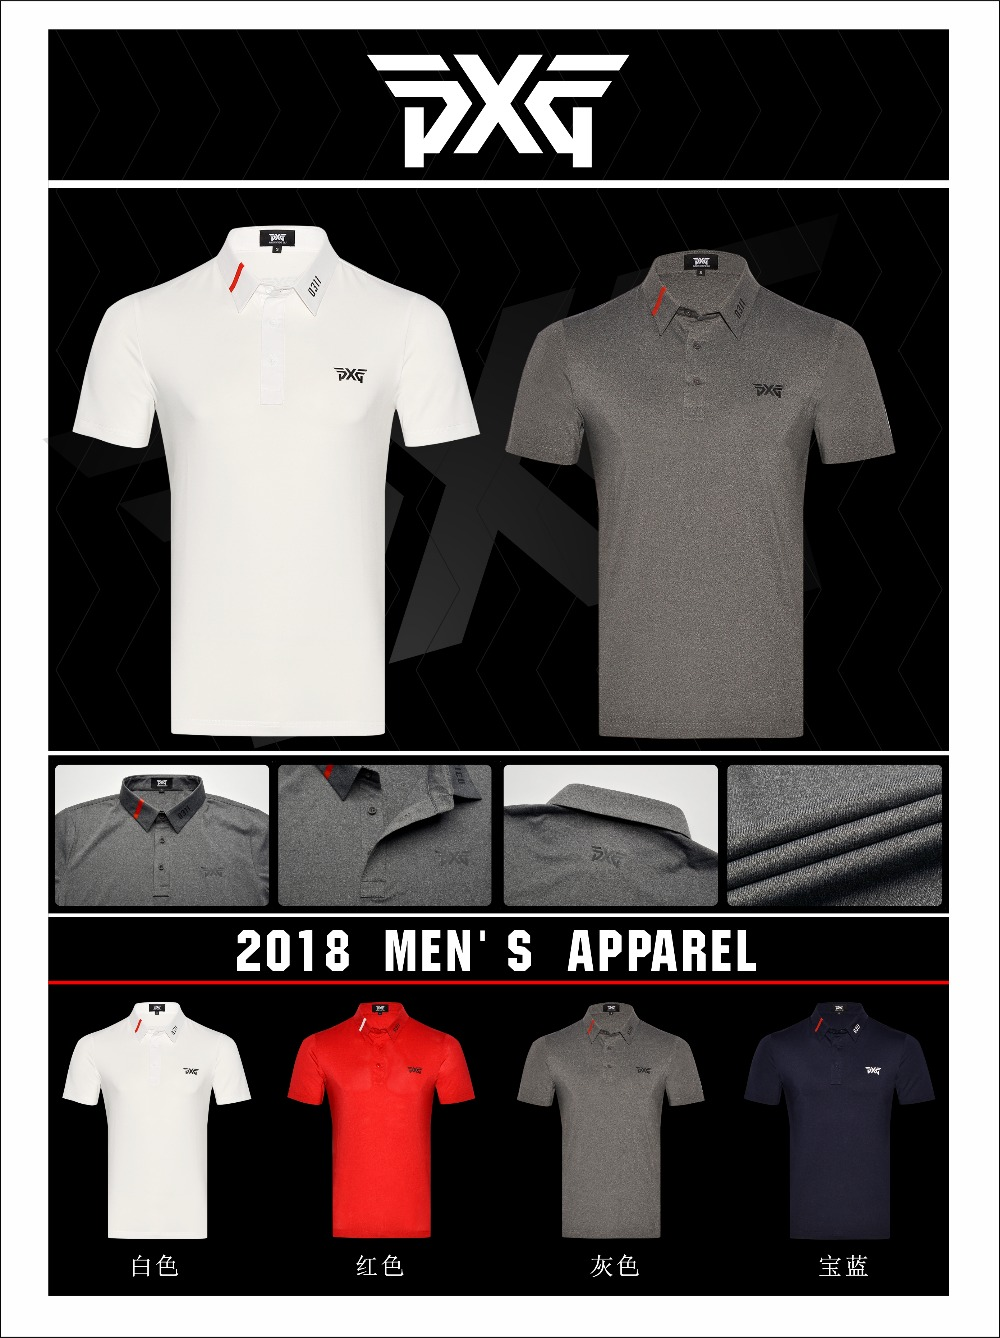 Golf T-shirt mens Sportswear Short sleeve PXG Golf T-shirt 8colors Golf clothes S-XXL in choice Leisure Golf shirt Free shipping rolsen ms 1770se